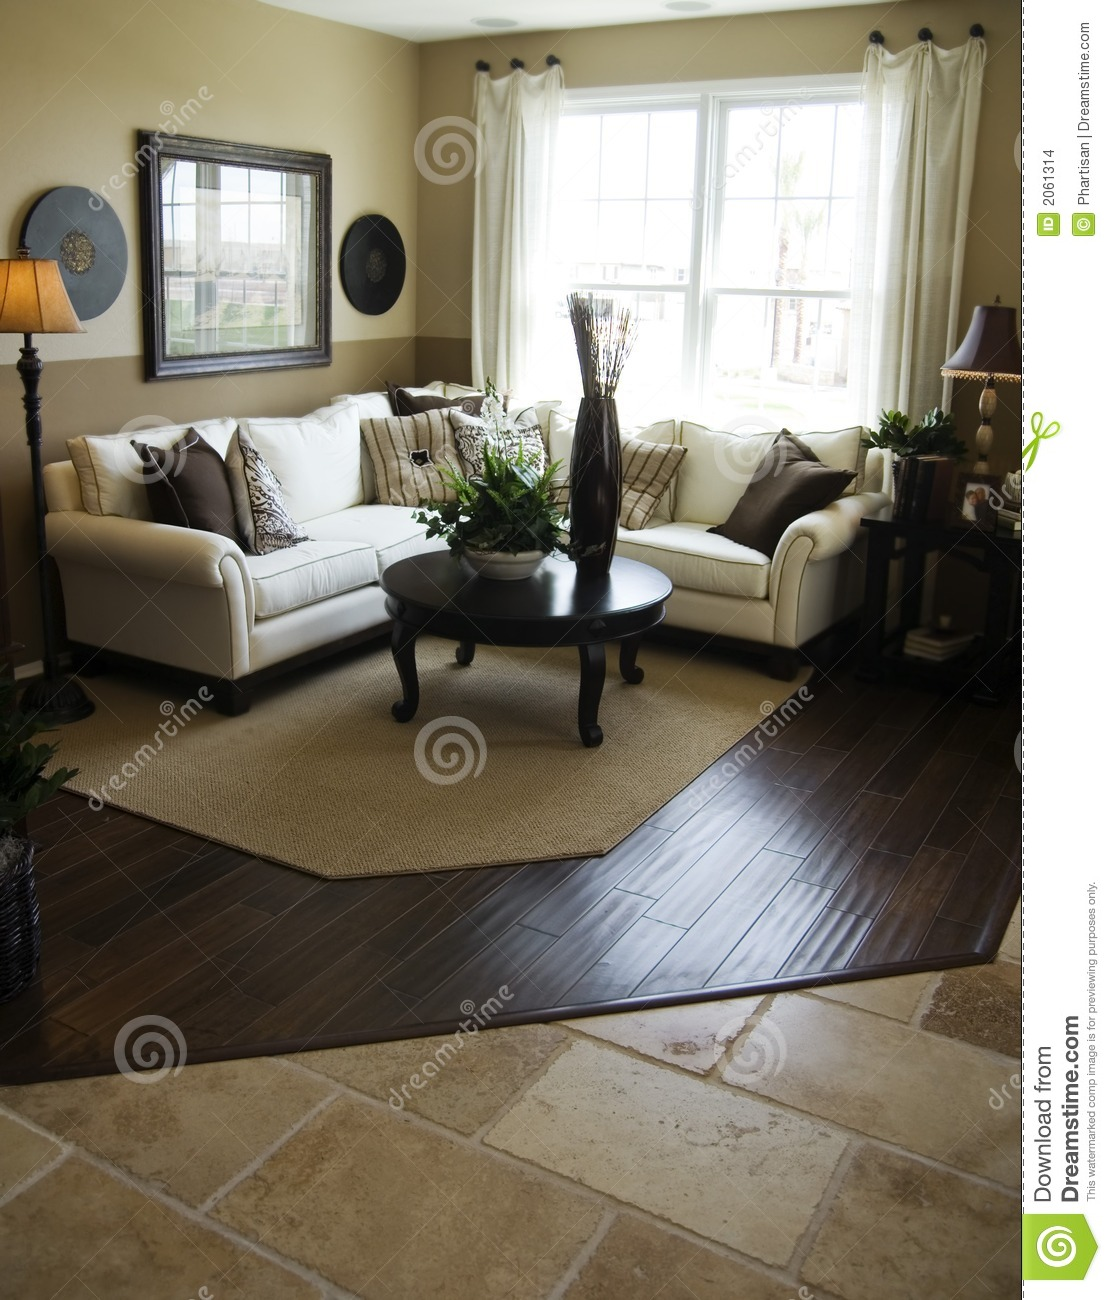 Model home interior design stock photo image of builder 2061314 for Interior design model homes pictures